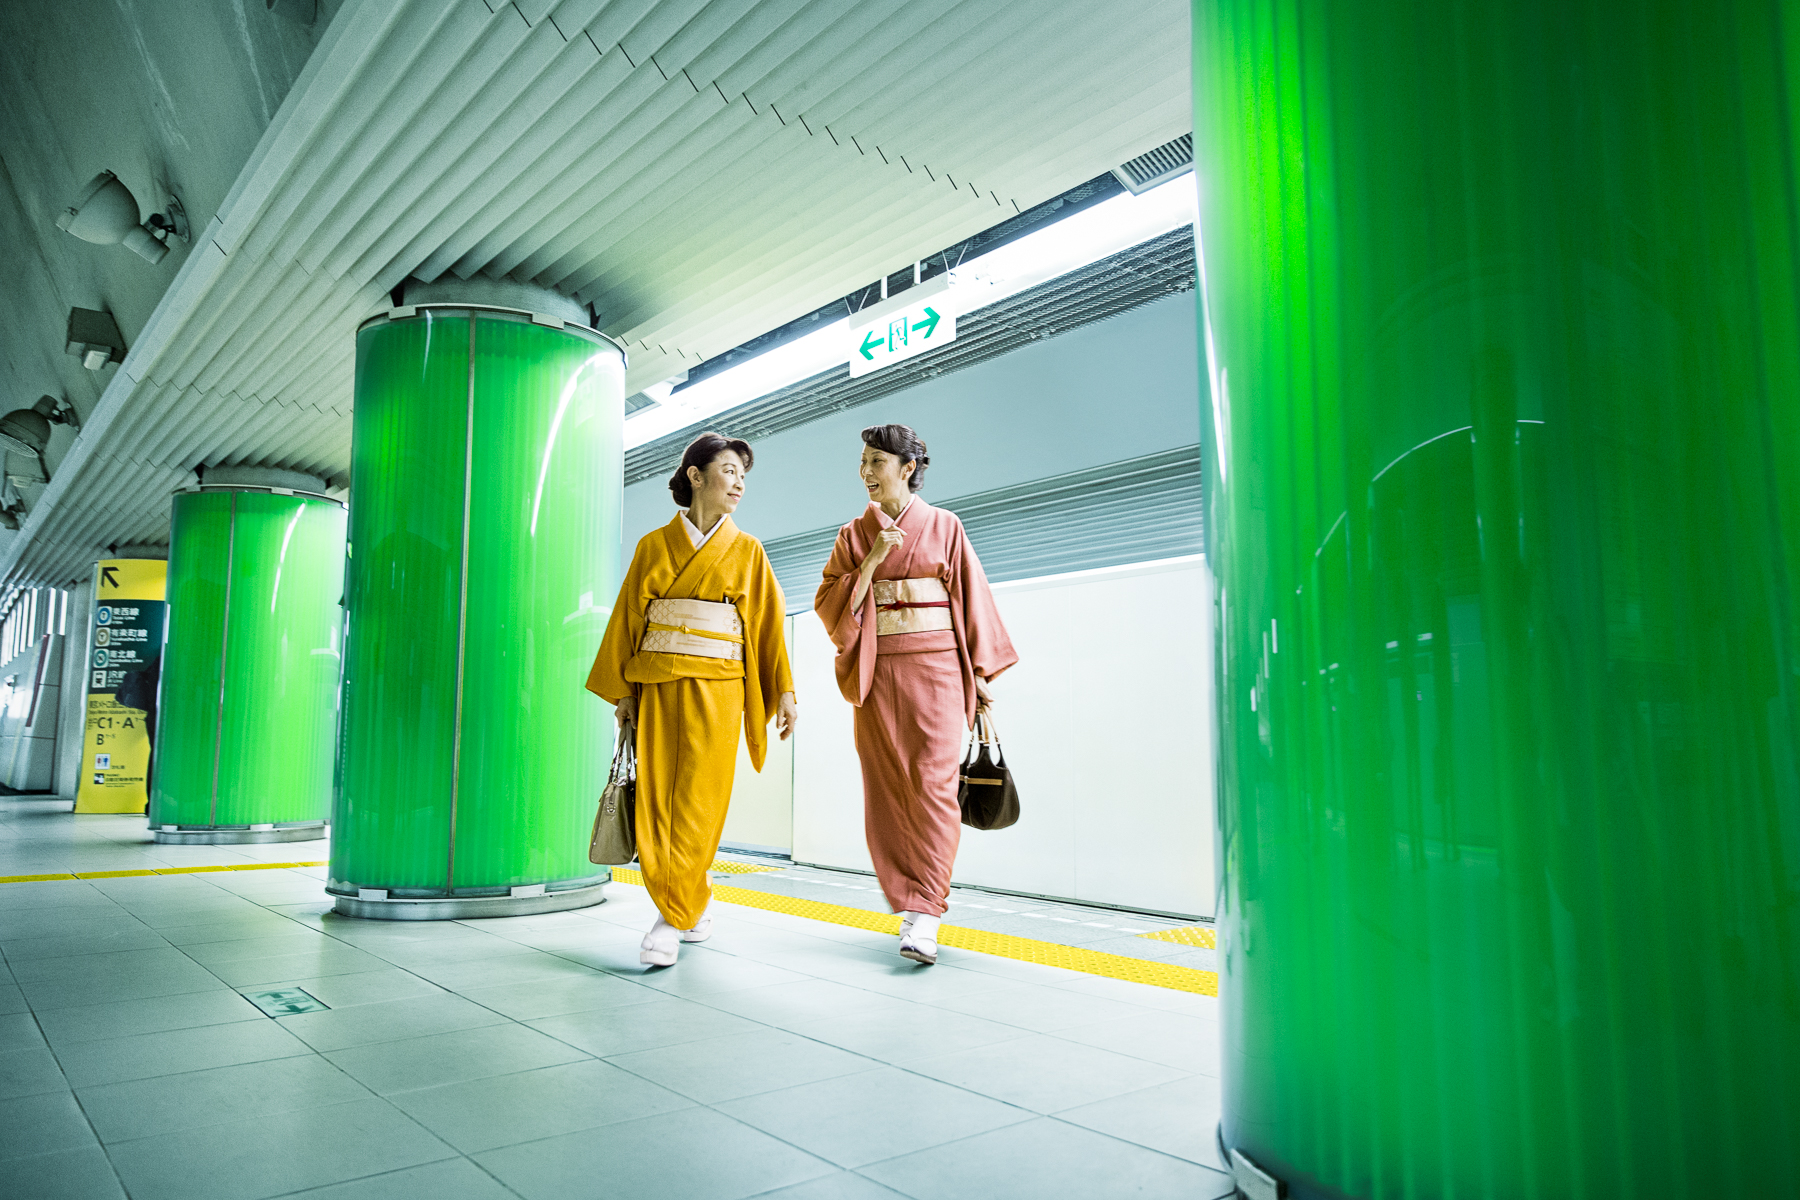 Two Women in Kimonos Walking  in a Subway Station